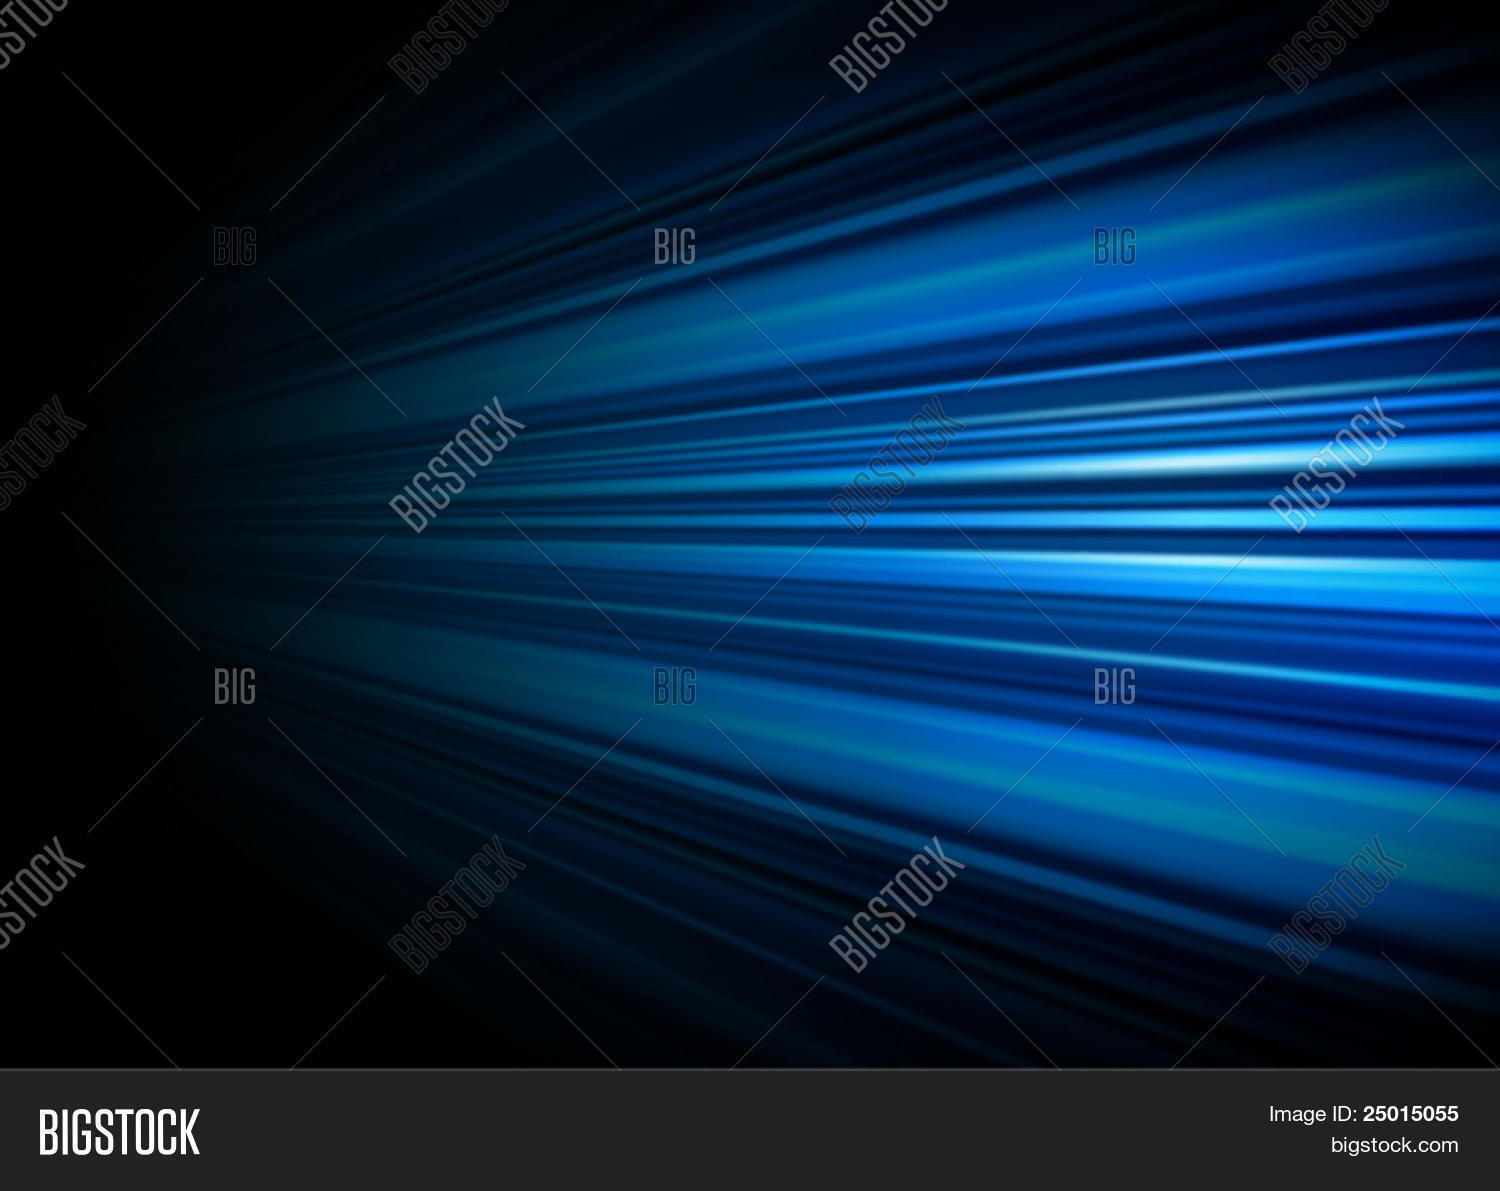 3d,abstract,abstract background,abstract backgrounds,abstract background vector,abstract blue background,abstract technology background,art,artistic,background,background abstract,backgrounds abstract,blue,blue abstract background,blue background abstract,business,city,city background,communication,company,computer,computer science,concept,corporate,corporate background,creative,creative background,design,electronic,elegant,elegant background,element,energy,energy abstract,energy background,eps10,futuristic,glow,graphic,graphic background,hi-tech,highway,illustration,infinity,information,light,light blue background,lines,lines background,matrix,mesh,modern,motion,networking,power,report,science,science background,shape,shiny,space,speed,style,tech,technology,template,vector,wallpaper,web